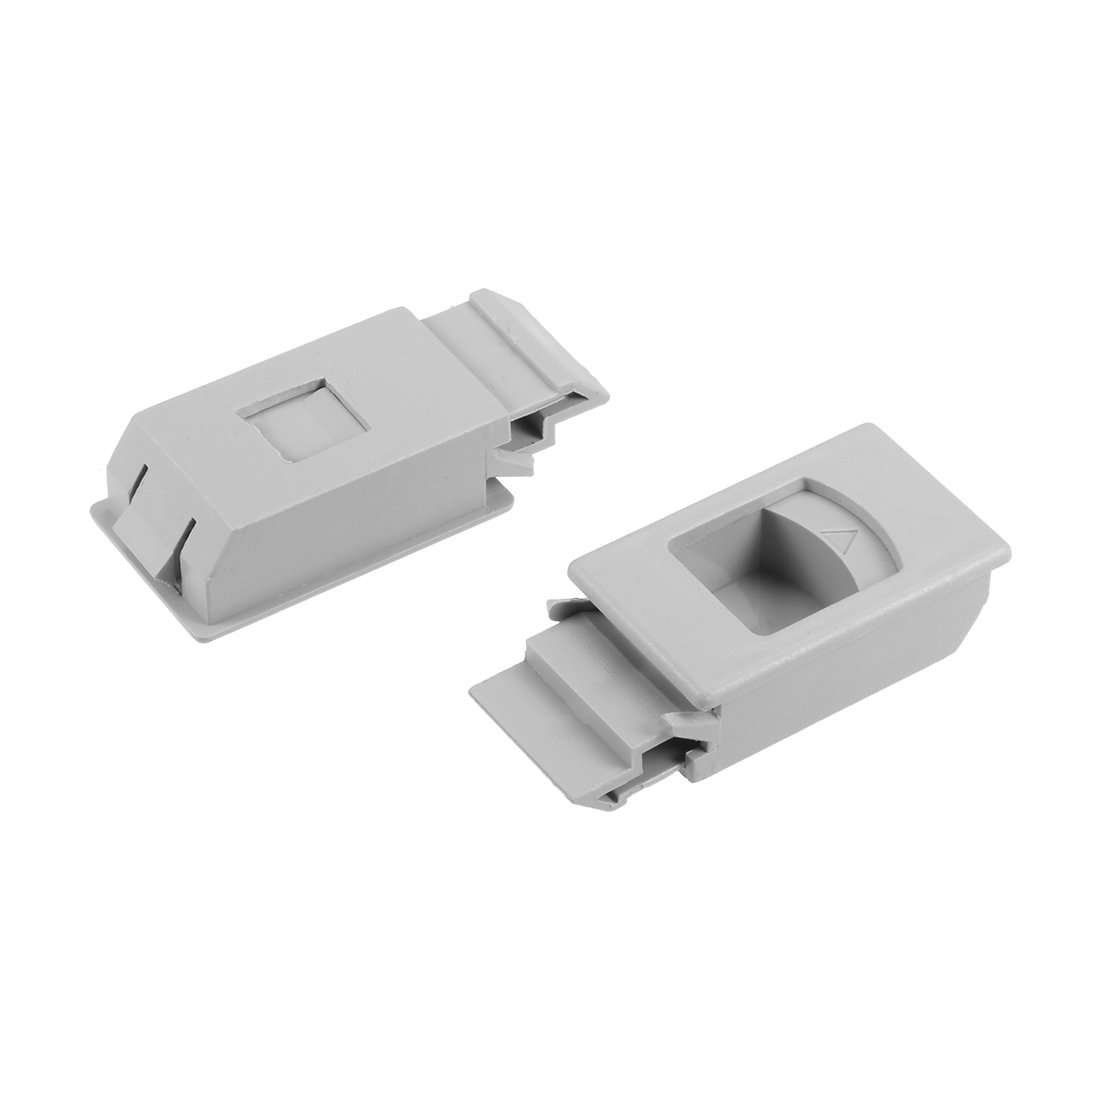 Plastic Slide Latch Window Door Inside Pull Rectangular Gray 61mm Length,6pcs